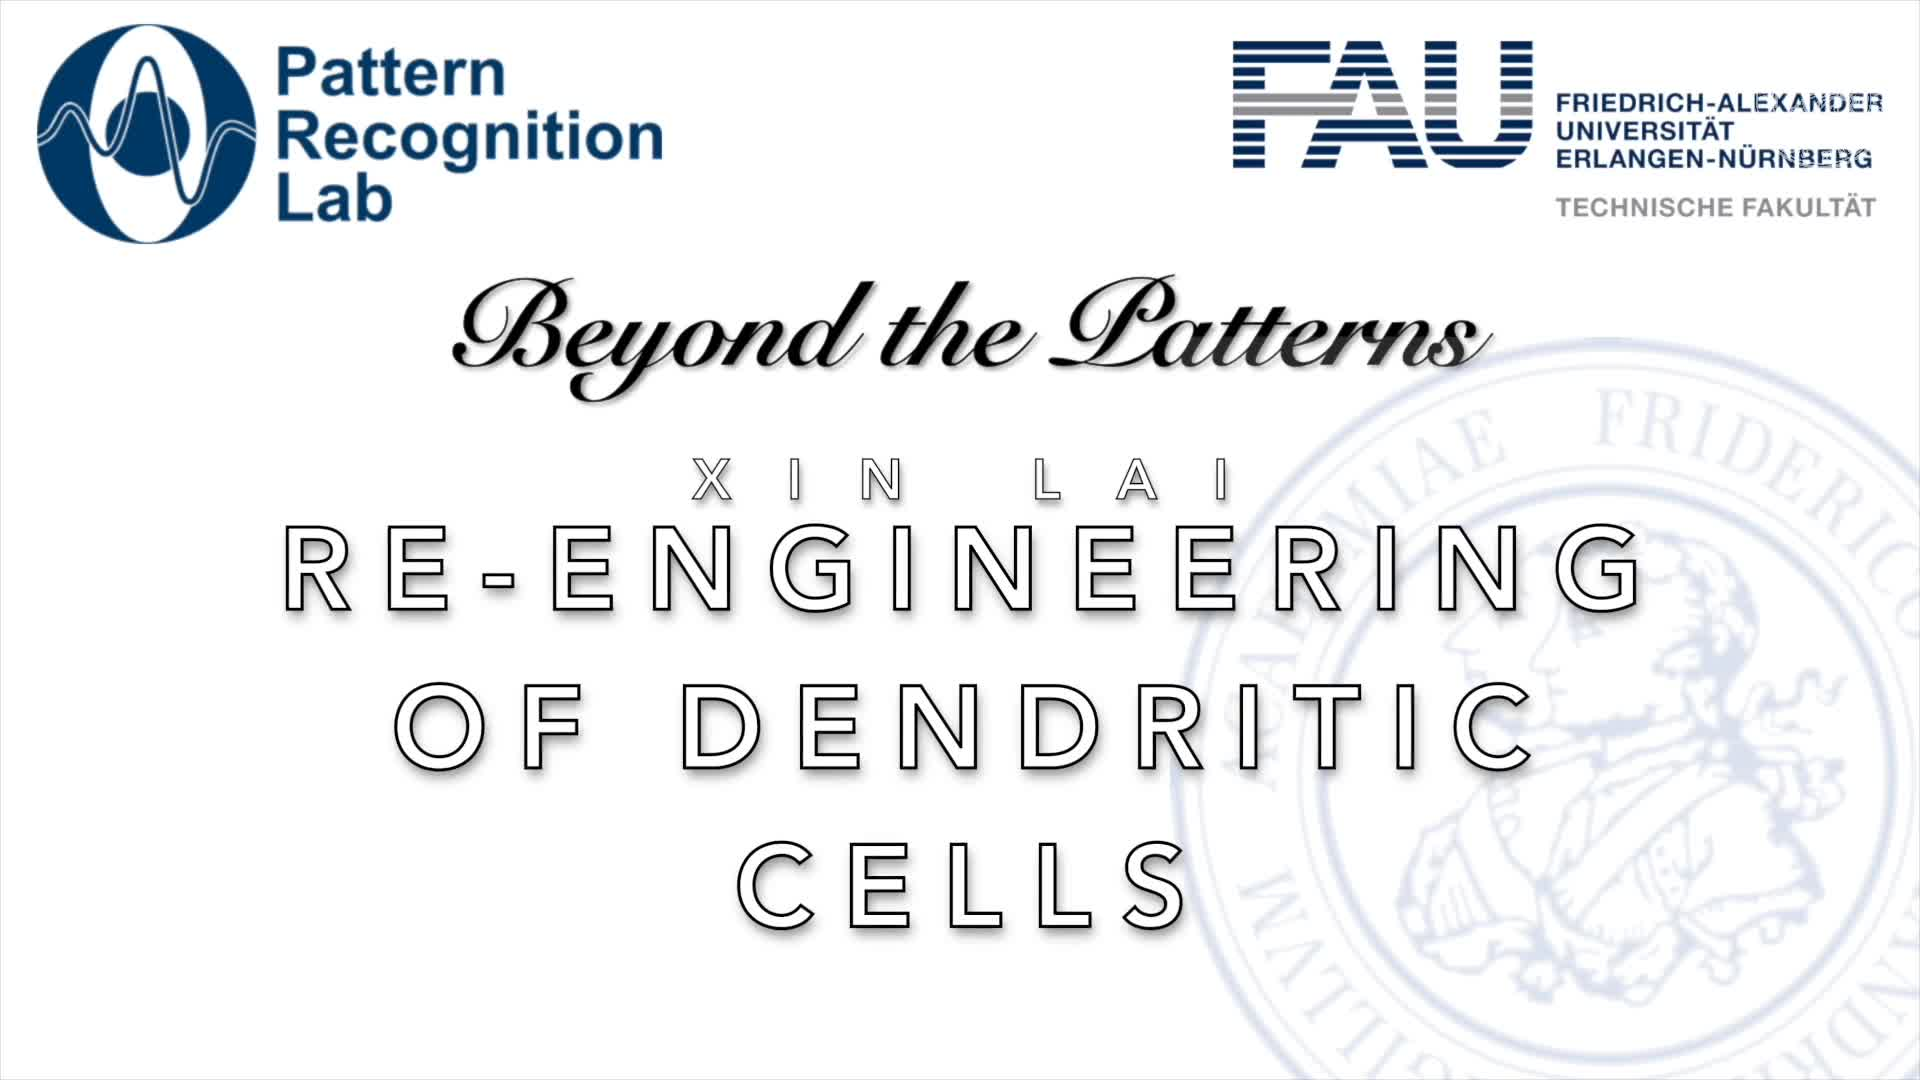 Beyond the Patterns - Xin Lai - Network- and systems-based re-engineering of dendritic cells with microRNAs for cancer immunotherapy preview image